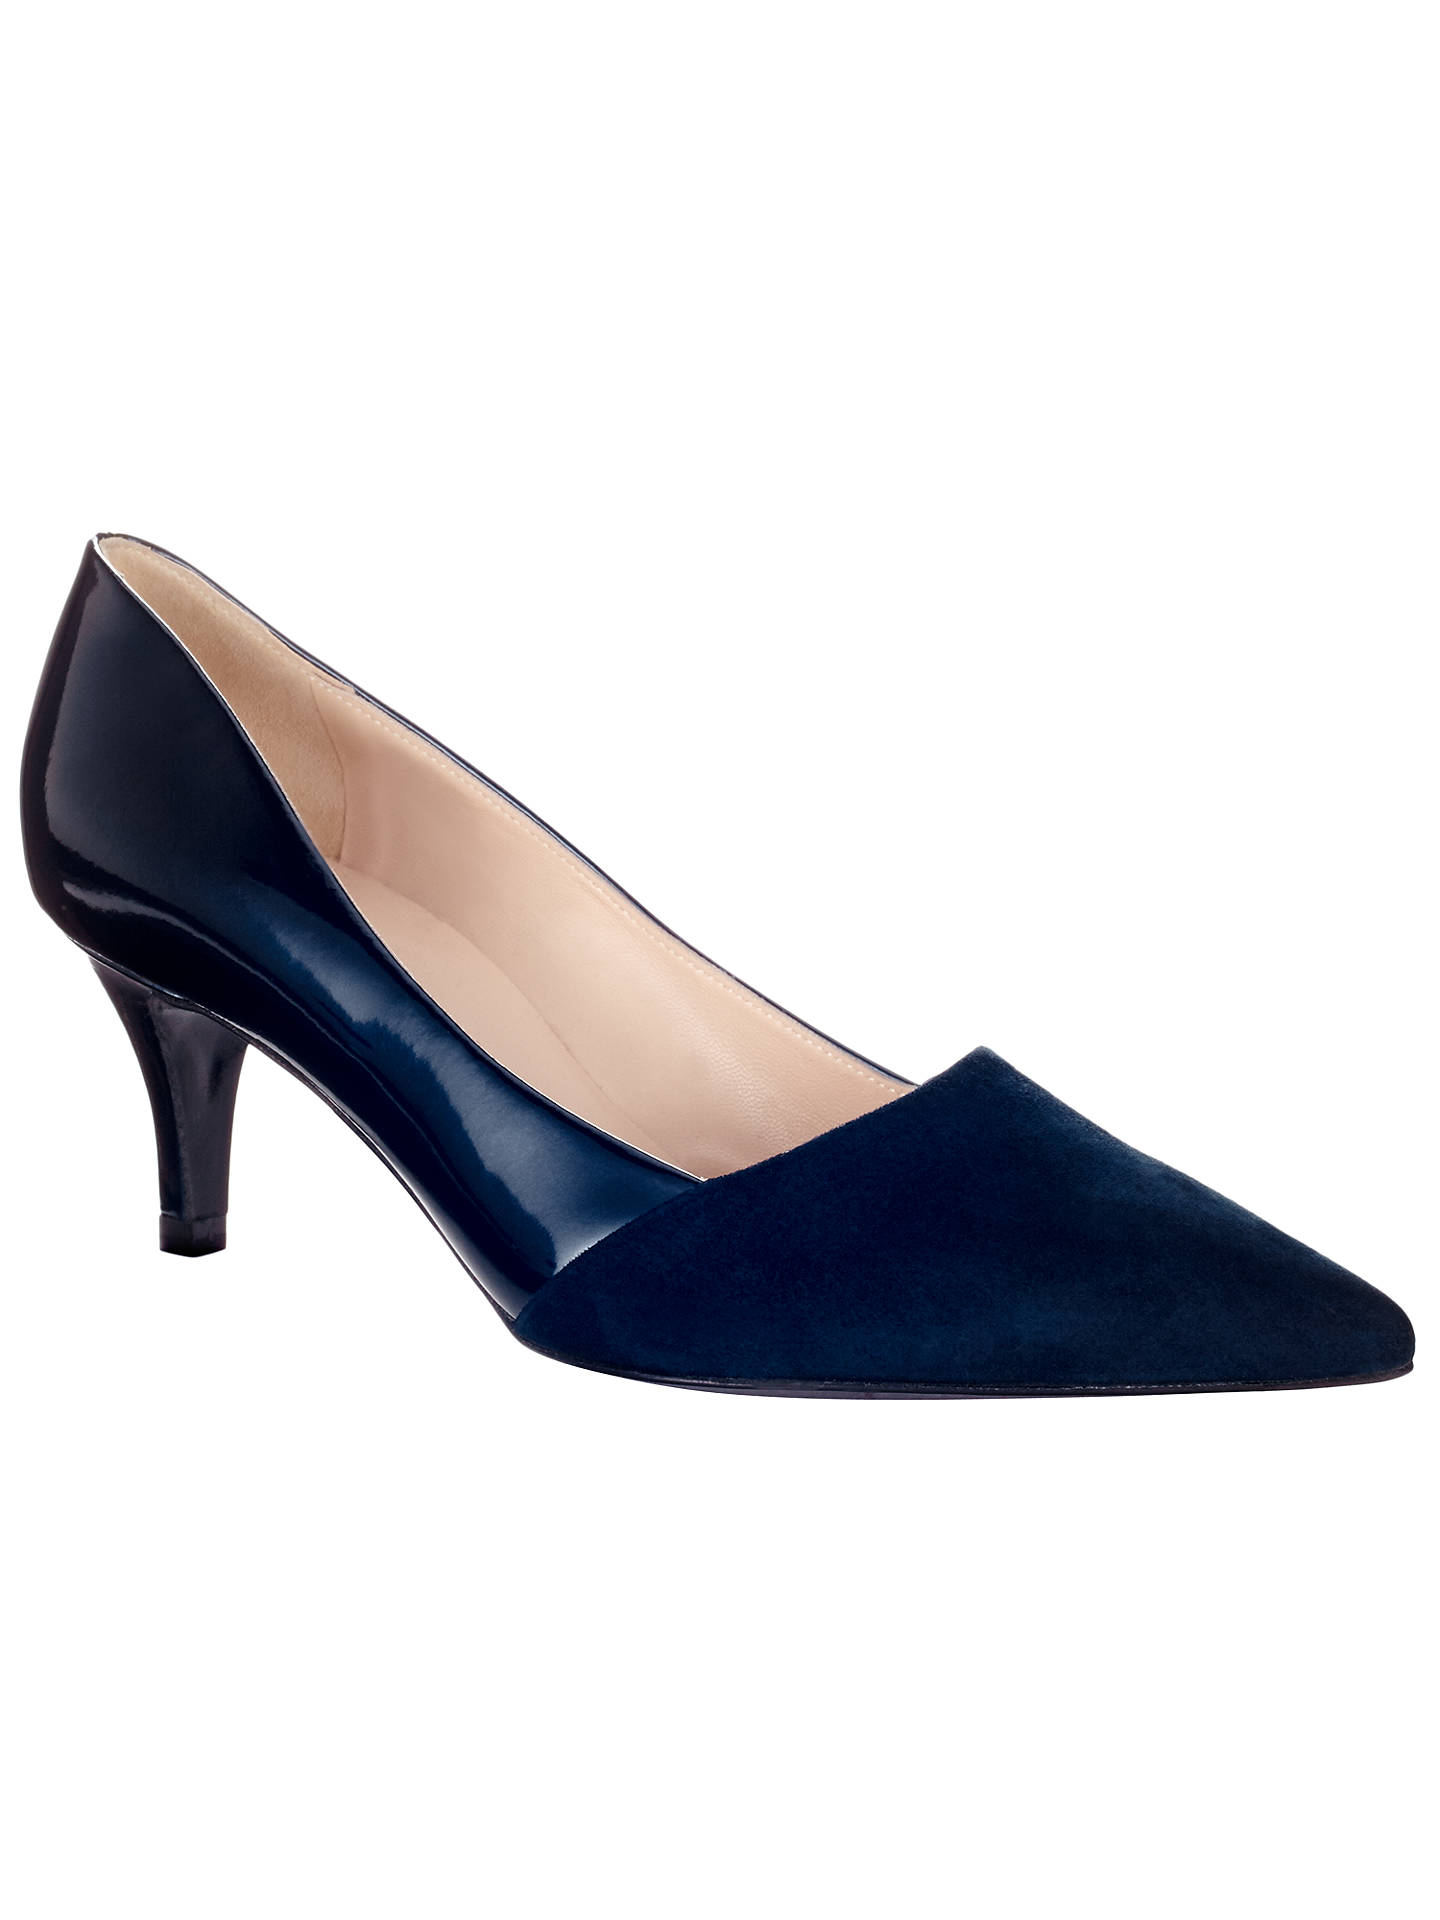 ec6bd7e8372ca Buy Peter Kaiser Semitara Mid Heeled Stiletto Court Shoes, Navy Suede, 4  Online at ...